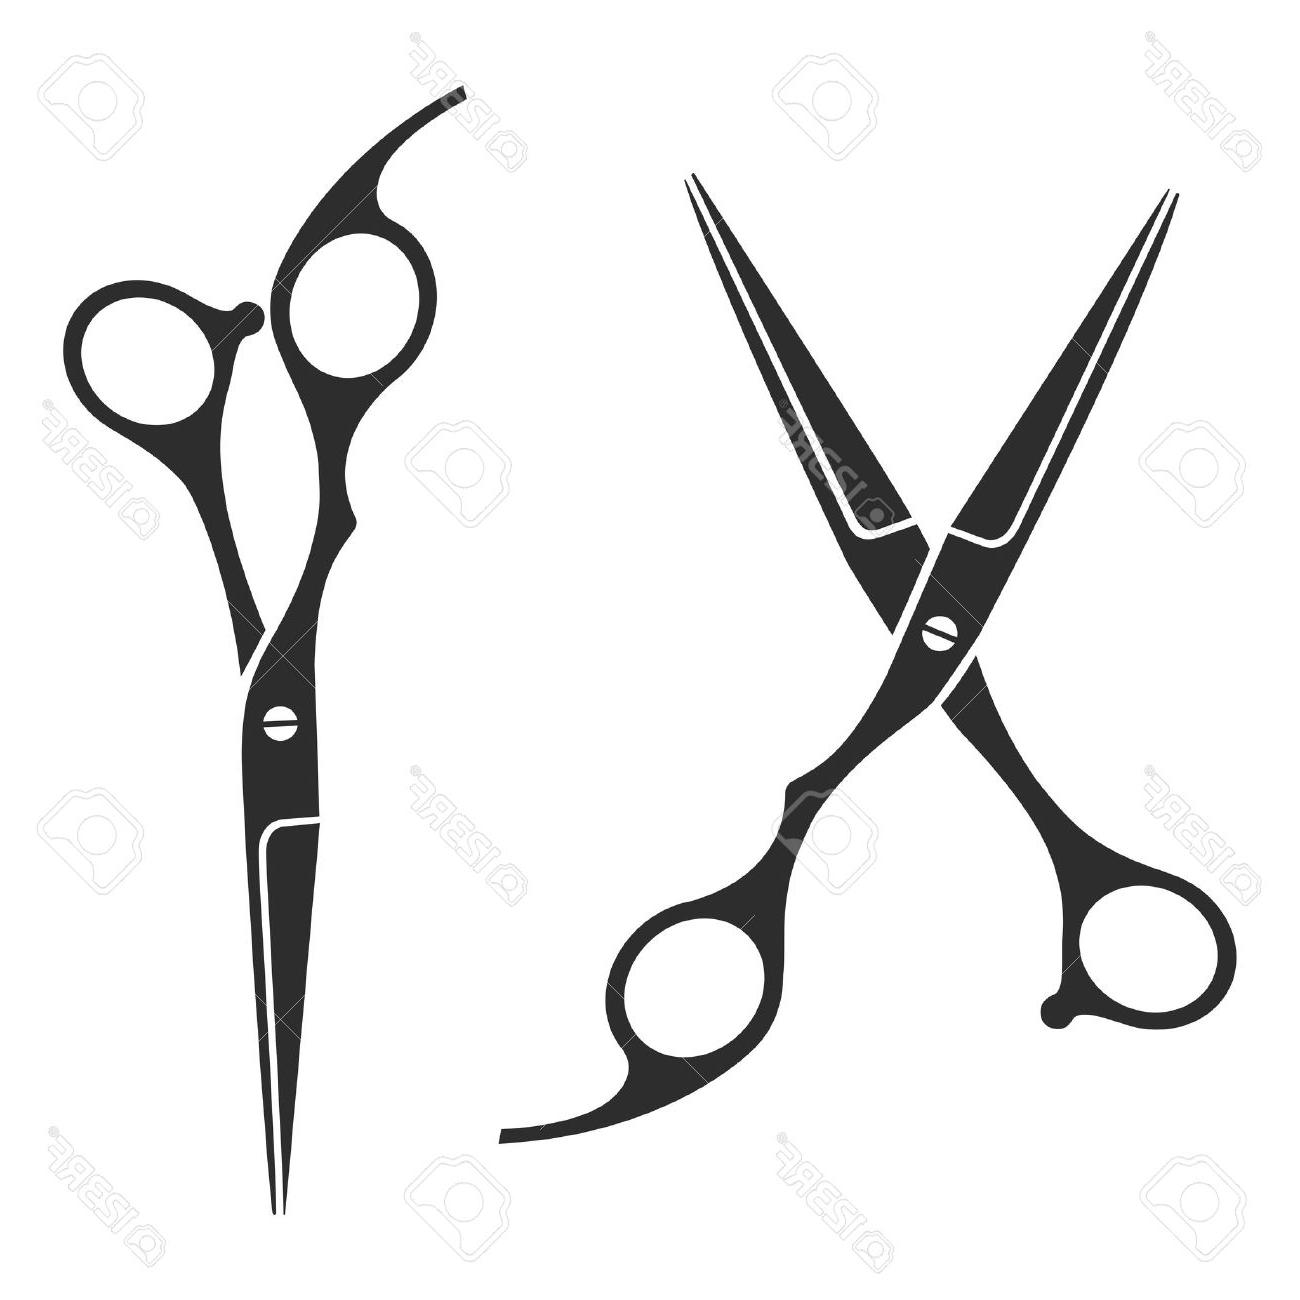 1300x1300 Best Free Vintage Barber Shop Scissors Logo Label Badge Stock